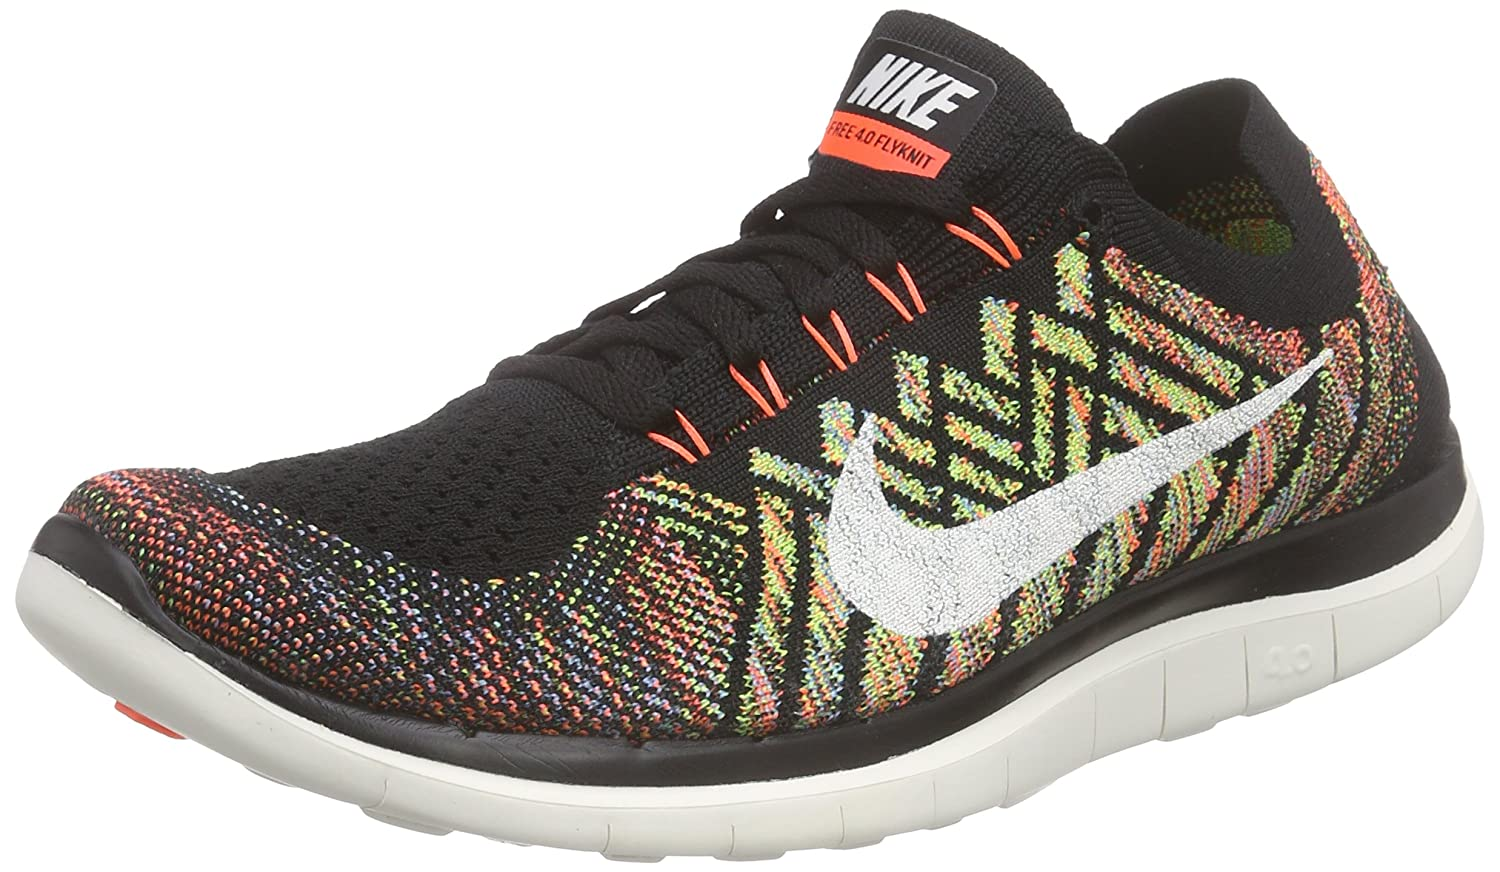 detailed look 4b165 b6bc9 Amazon.com  Nike Free Flyknit 4.0 Mens Running Shoe  Running